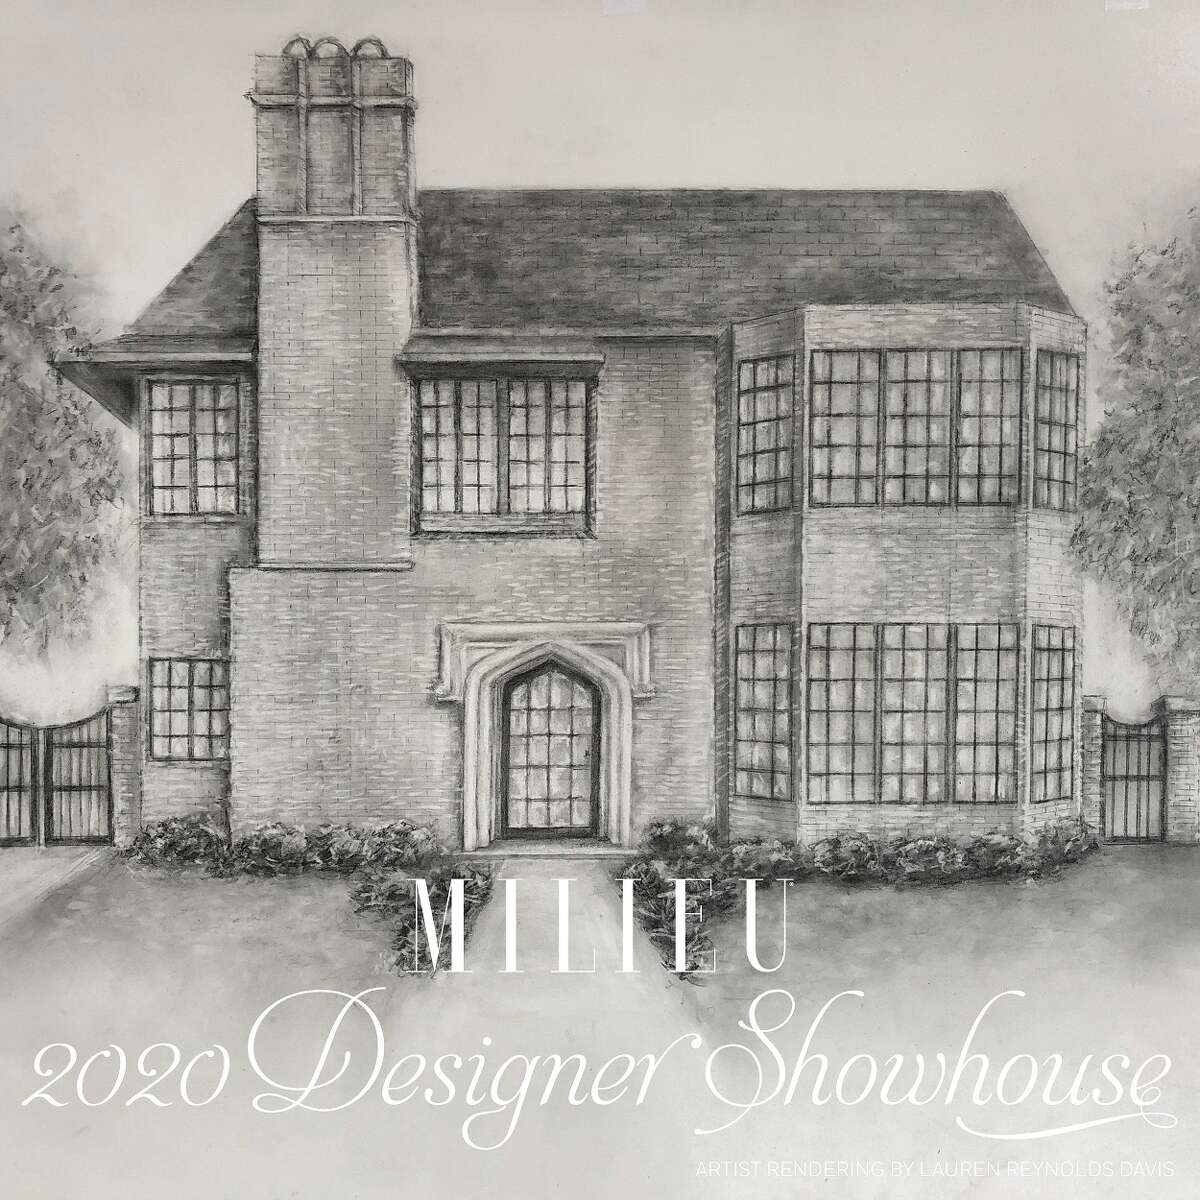 Milieu magazine has rescheduled its Designer Showhome to June 6-7 and 13-14.